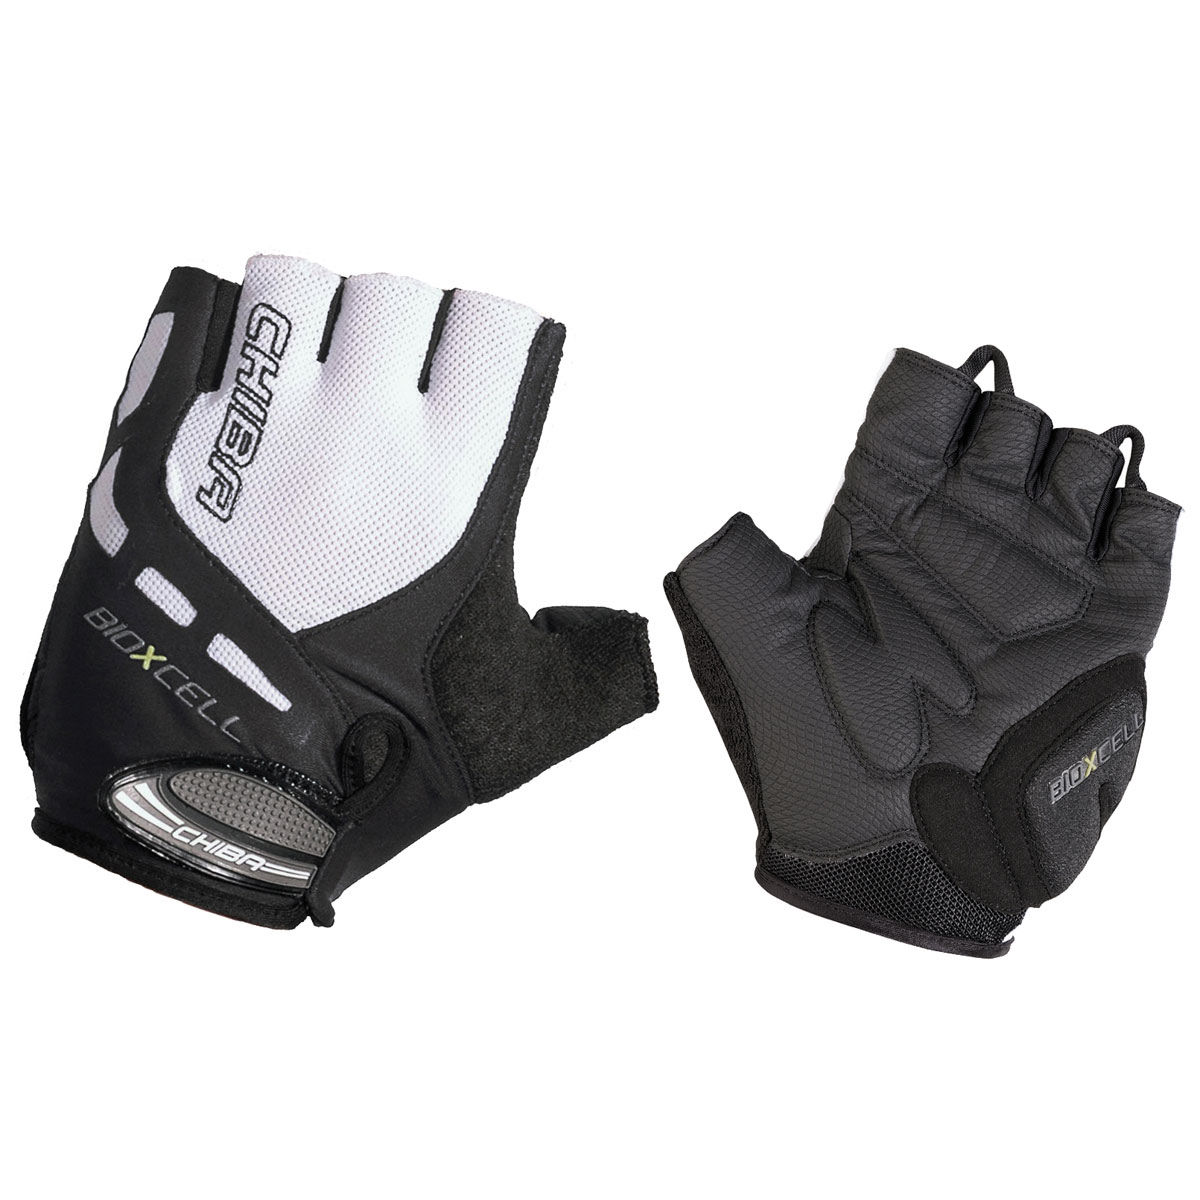 Chiba Bioxcell-Line Mitts - Guantes